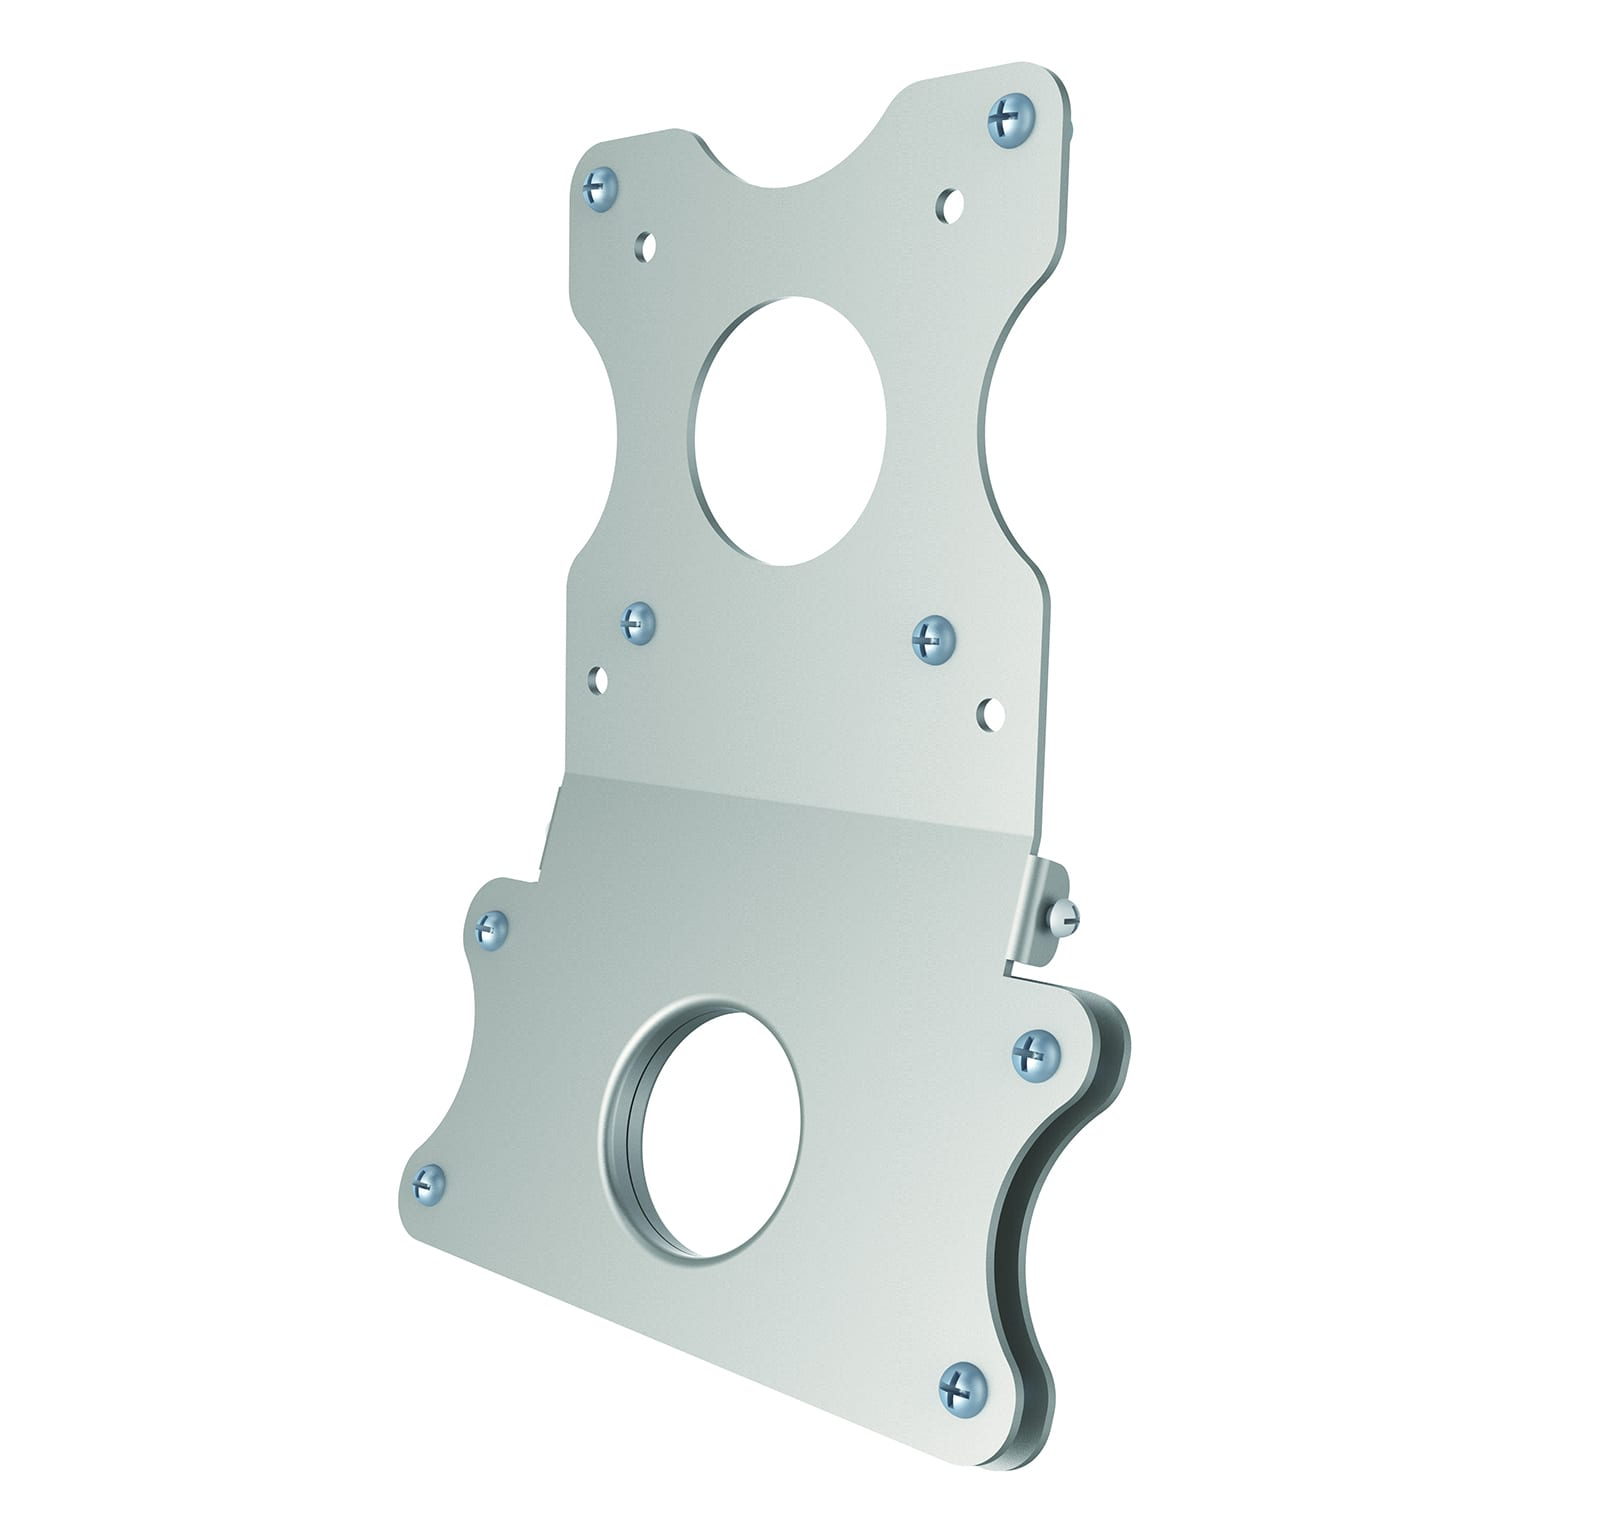 IMC2 iMac VESA adapter for monitor arms